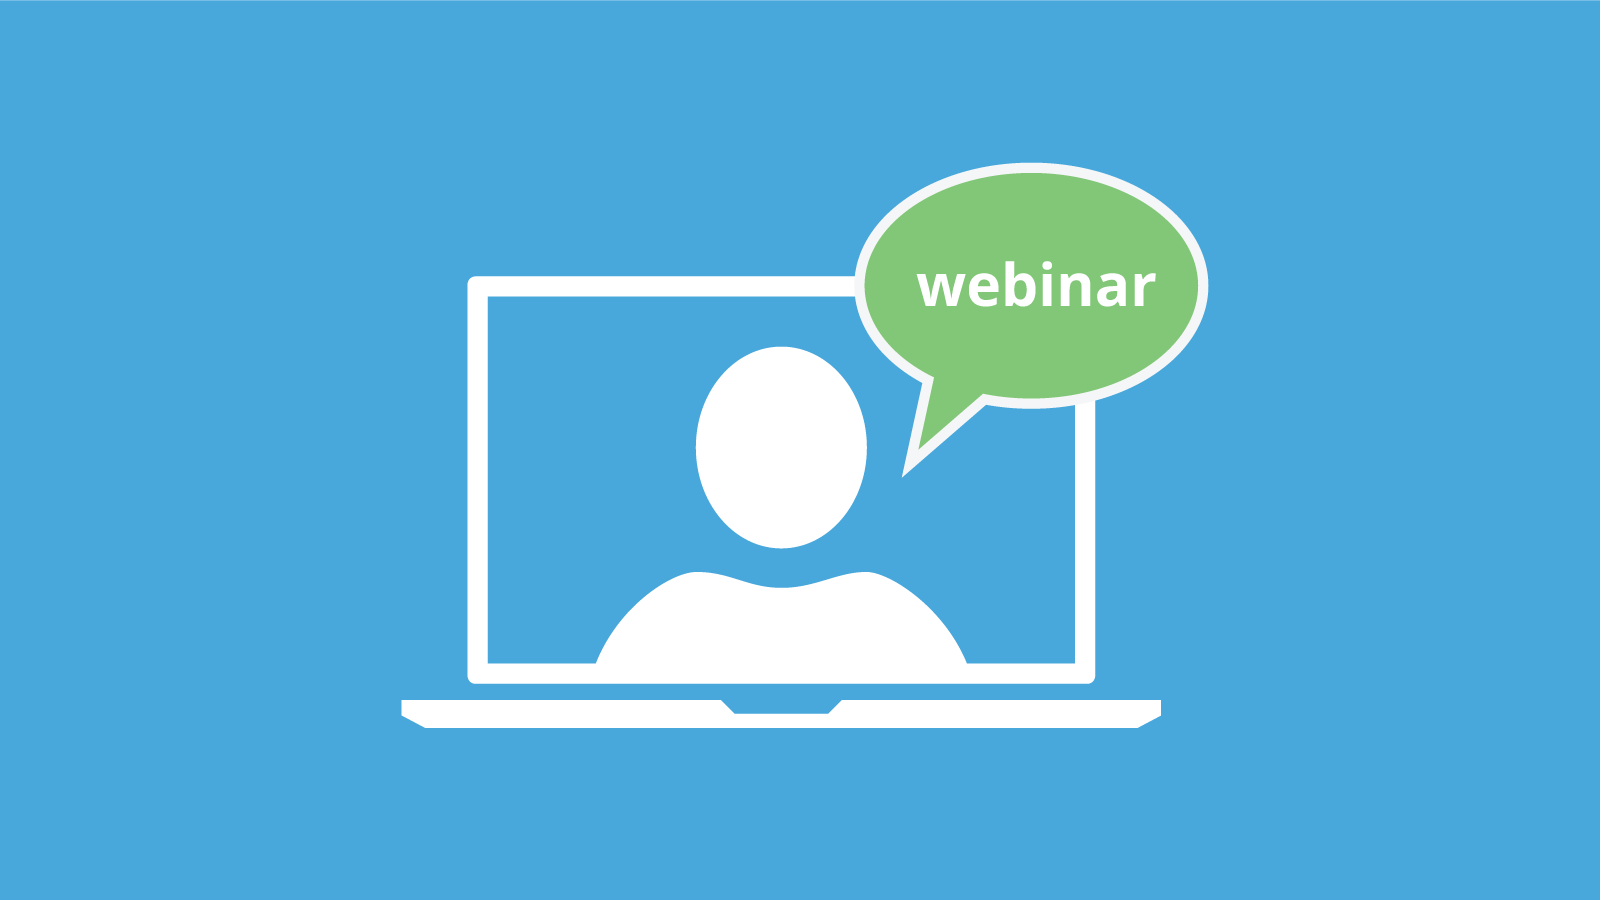 [Webinar] What really engages employees? The 4 things that make a real difference.